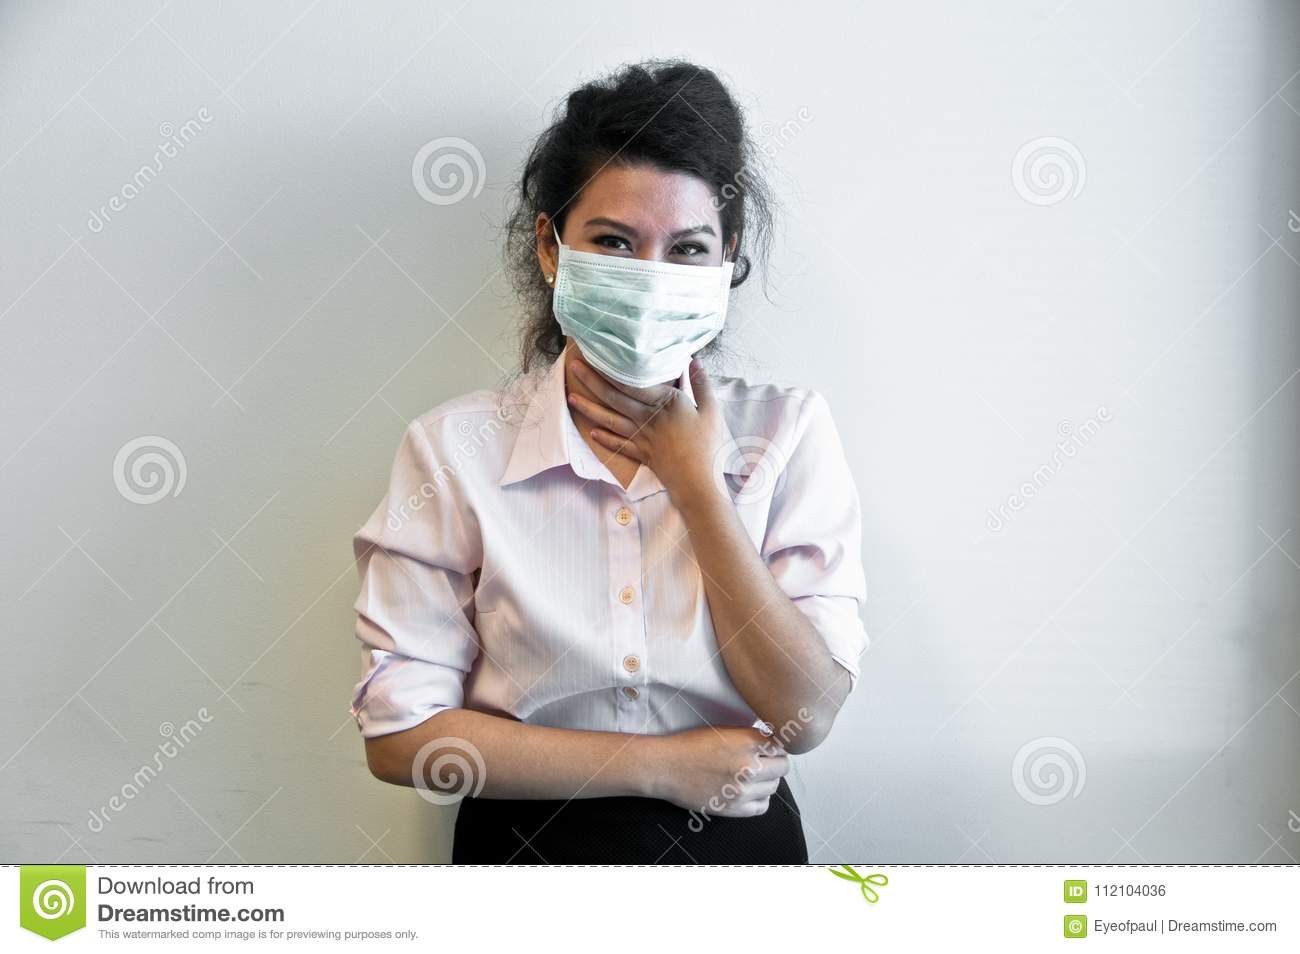 How to face wear mask when sick exclusive photo